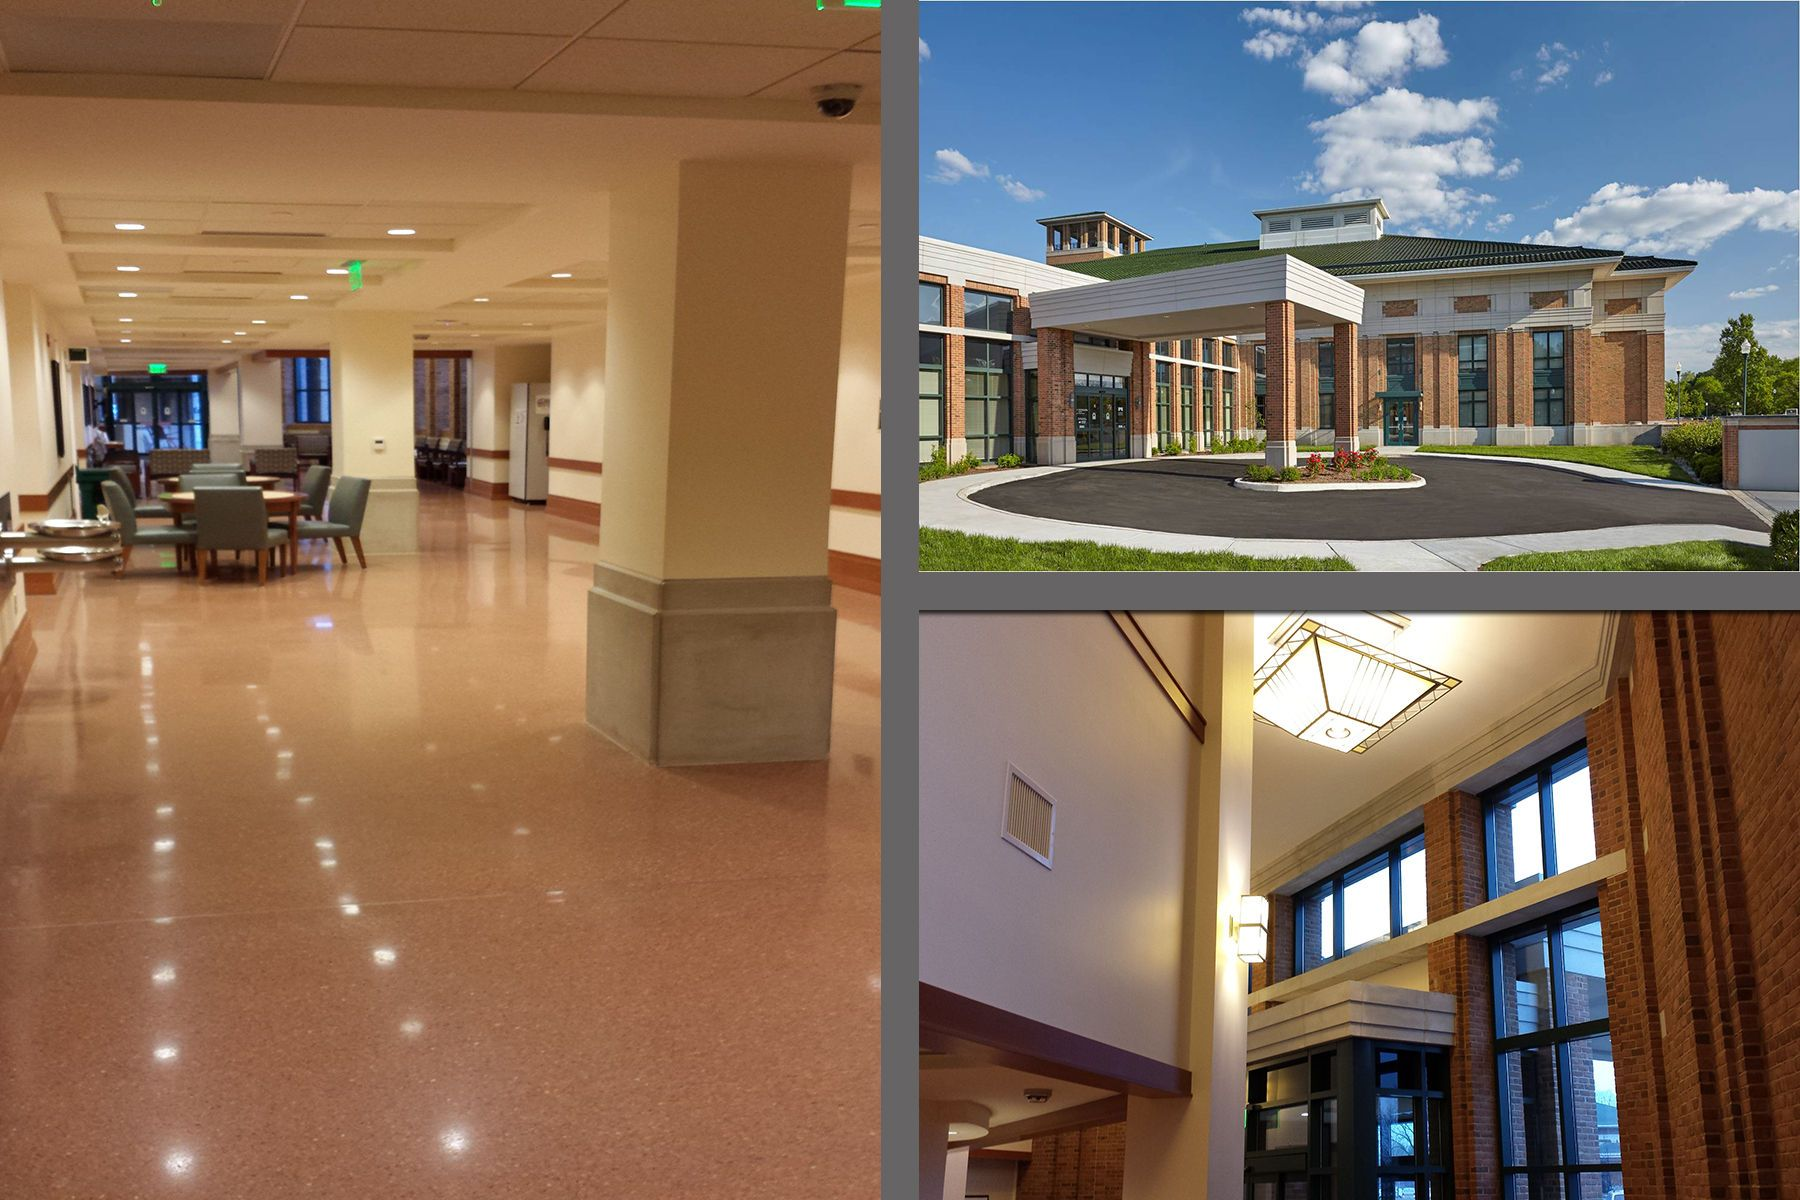 Cancer Center and Emergency Department